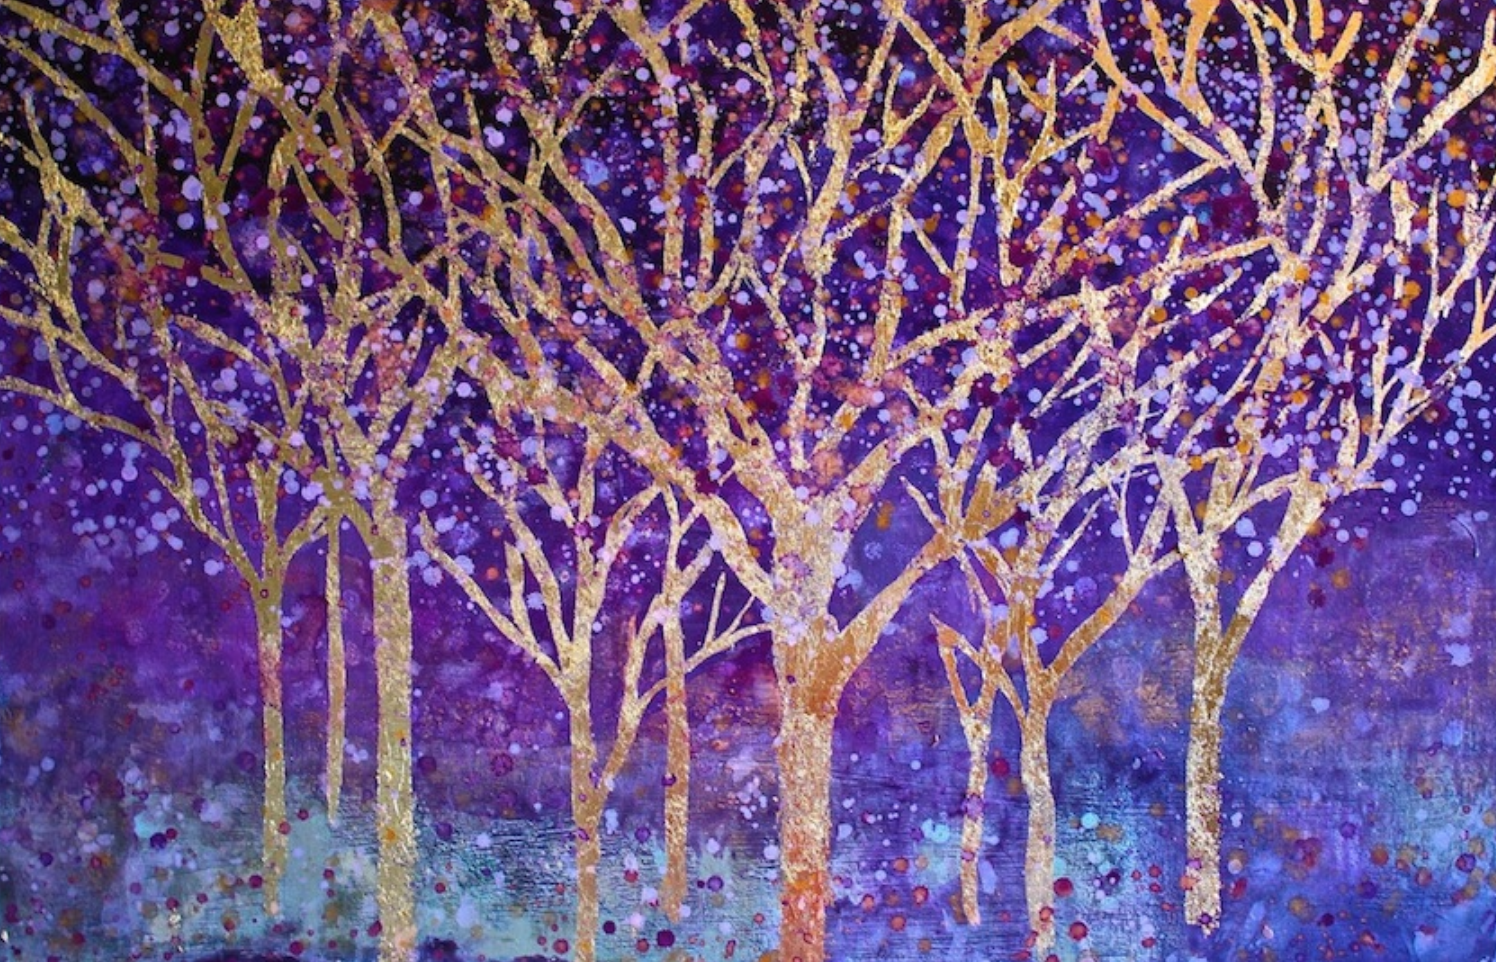 Title: Amethyst Forest